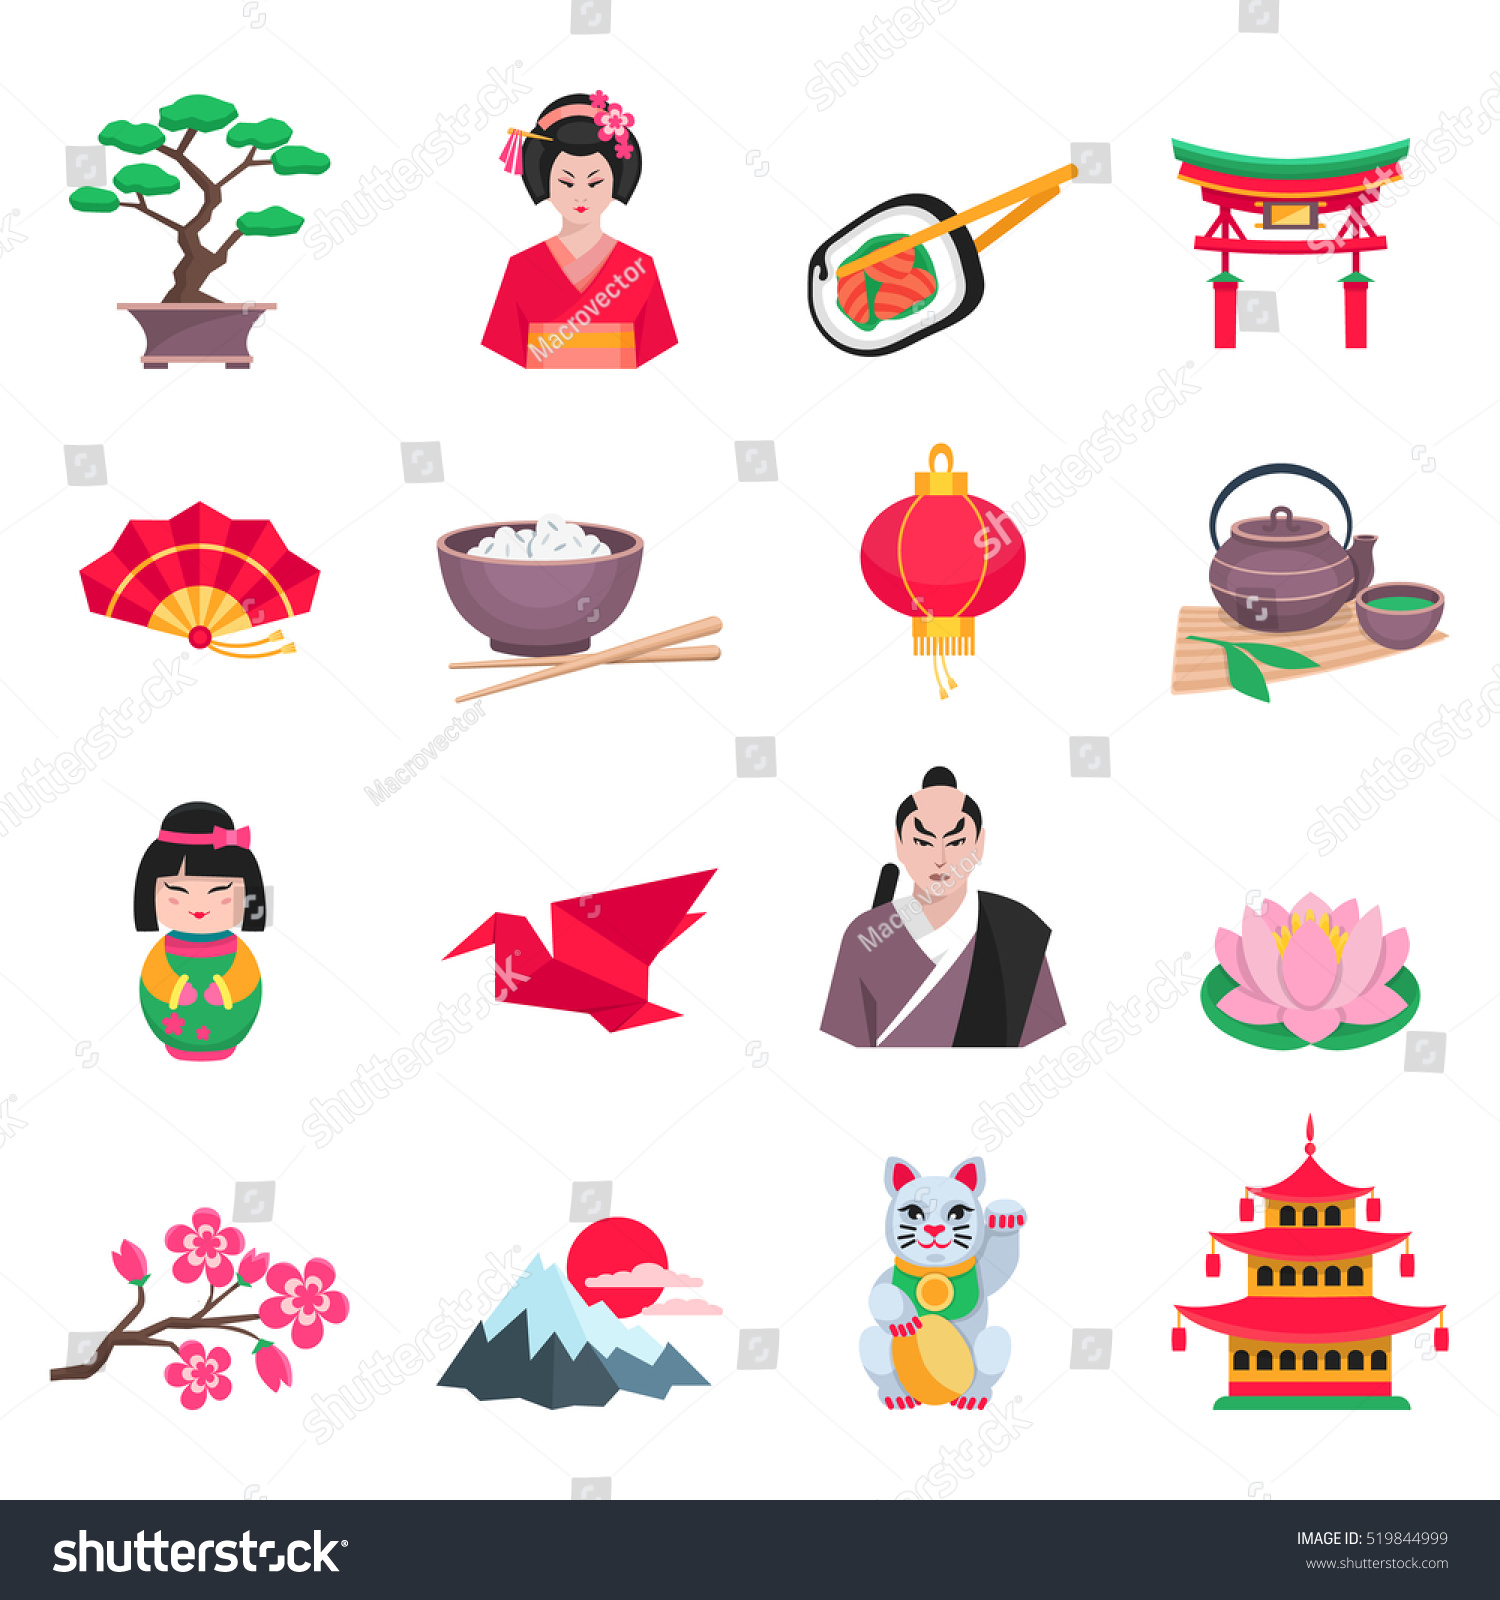 Japanese Culture Flat Icons Collection Tea Stock Illustration Schema Of Origami Mobile Crane 2 With Ceremony Sakura And Paper Symbols Abstract Isolated